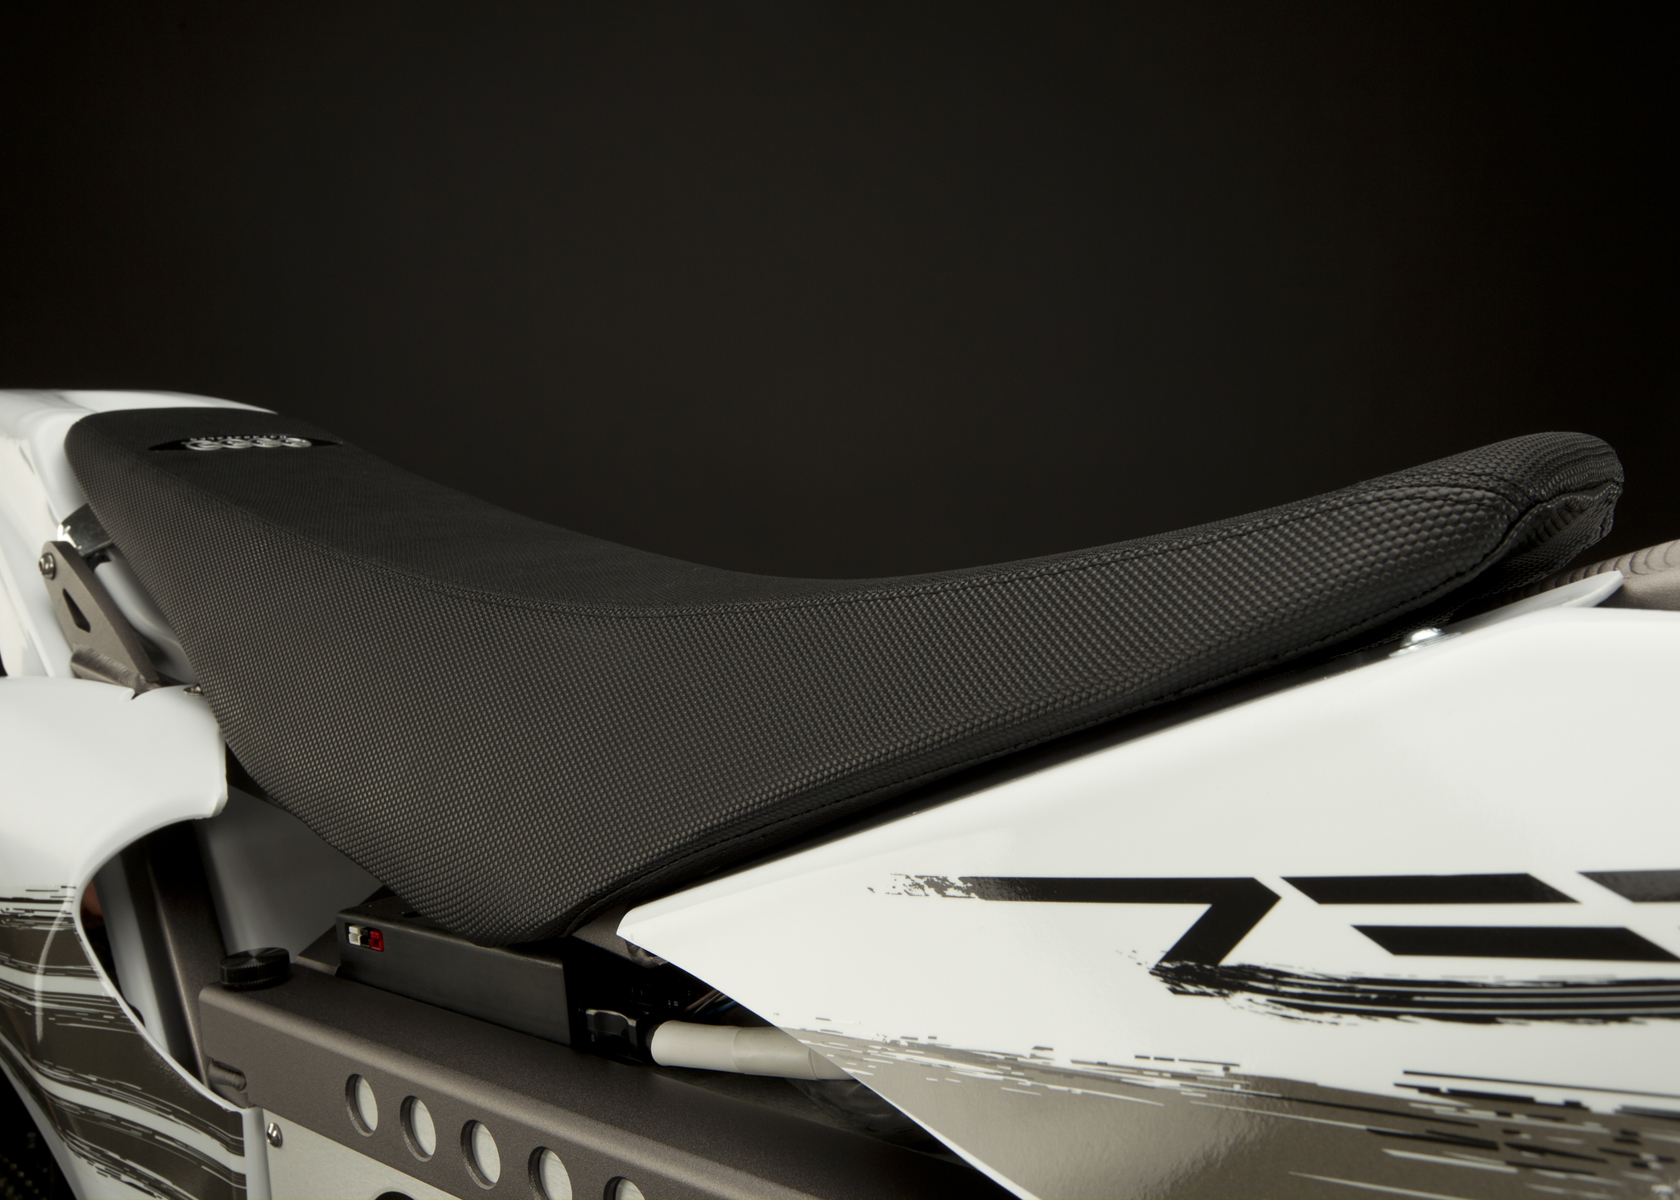 2011 Zero X Electric Motorcycle: Seat